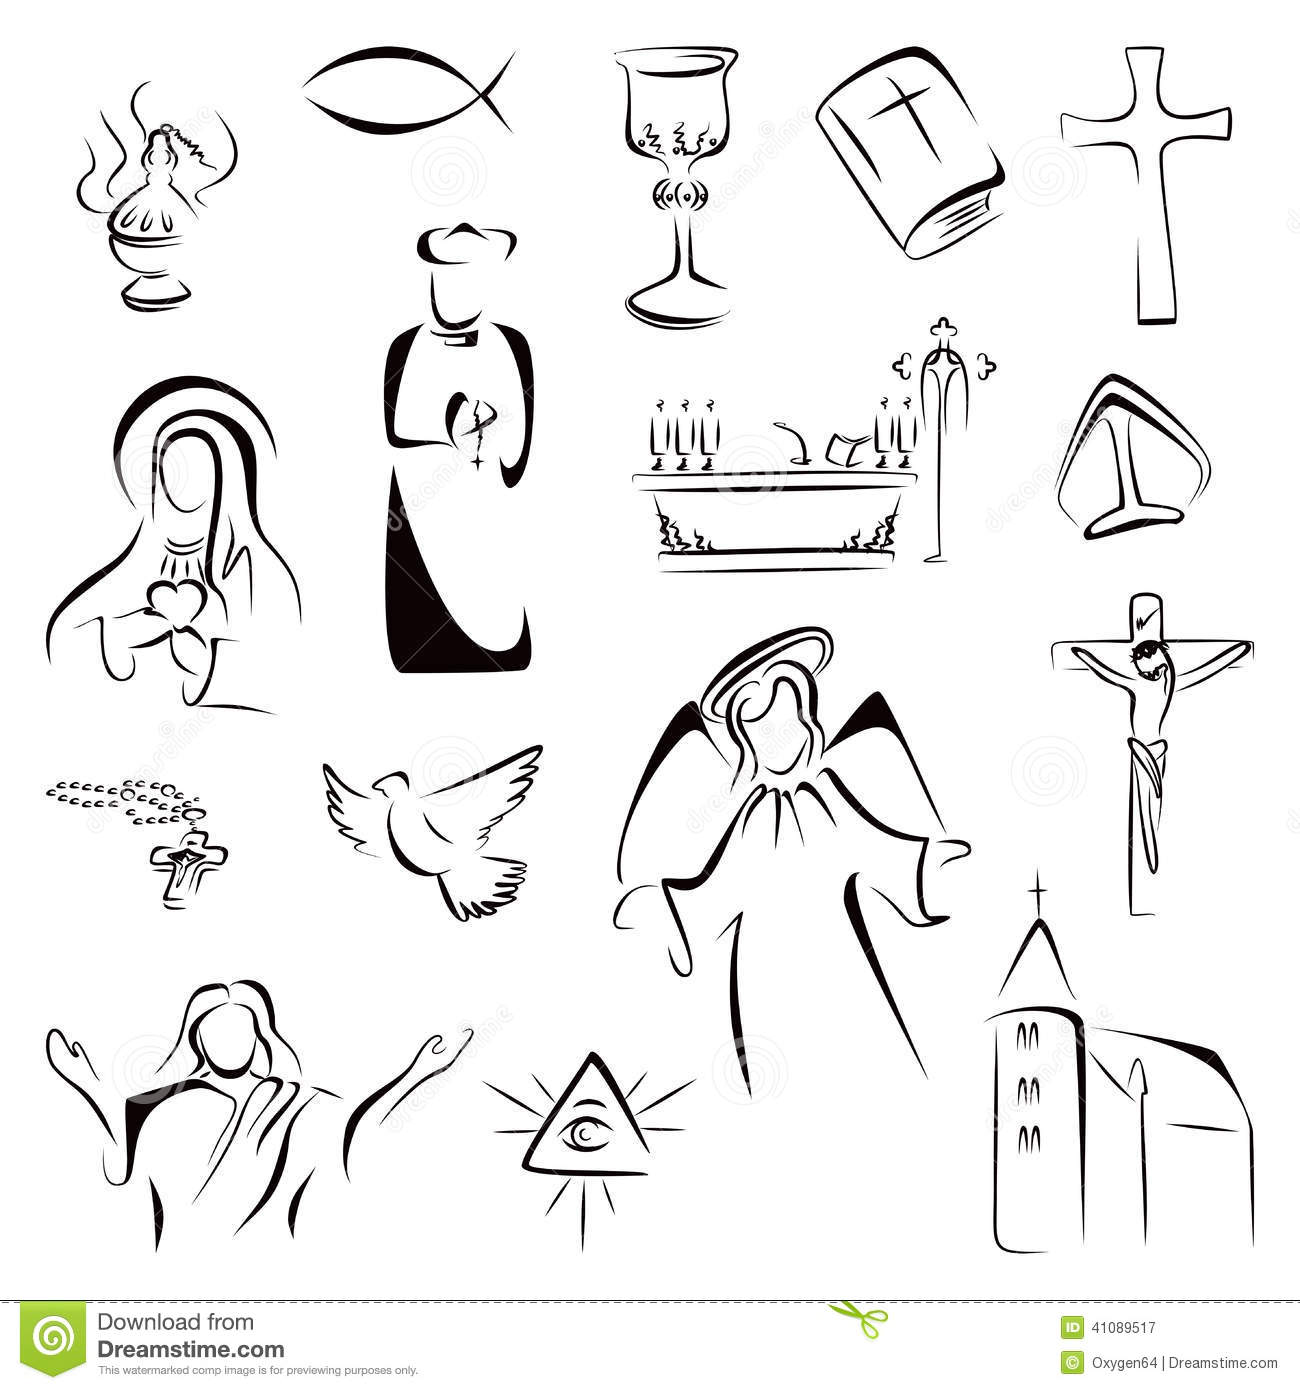 15 Icon Catholic Religious Symbols Images Catholic Christian